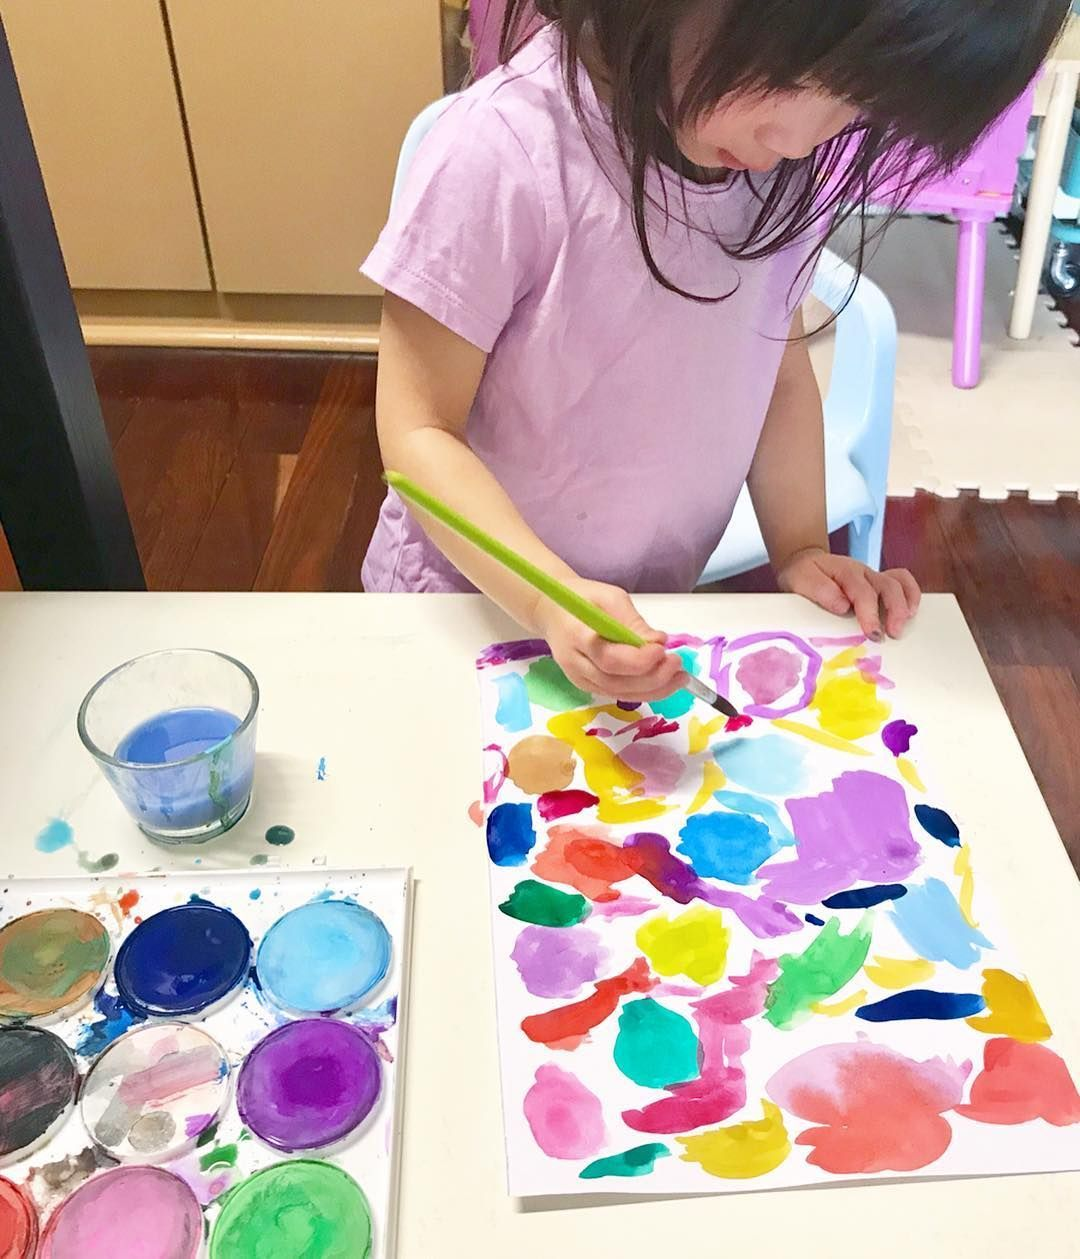 Exploring And Mixing Colors Is So Important For Children To Connect To The Colors In Their Environment Art Room Play Maker Art Education